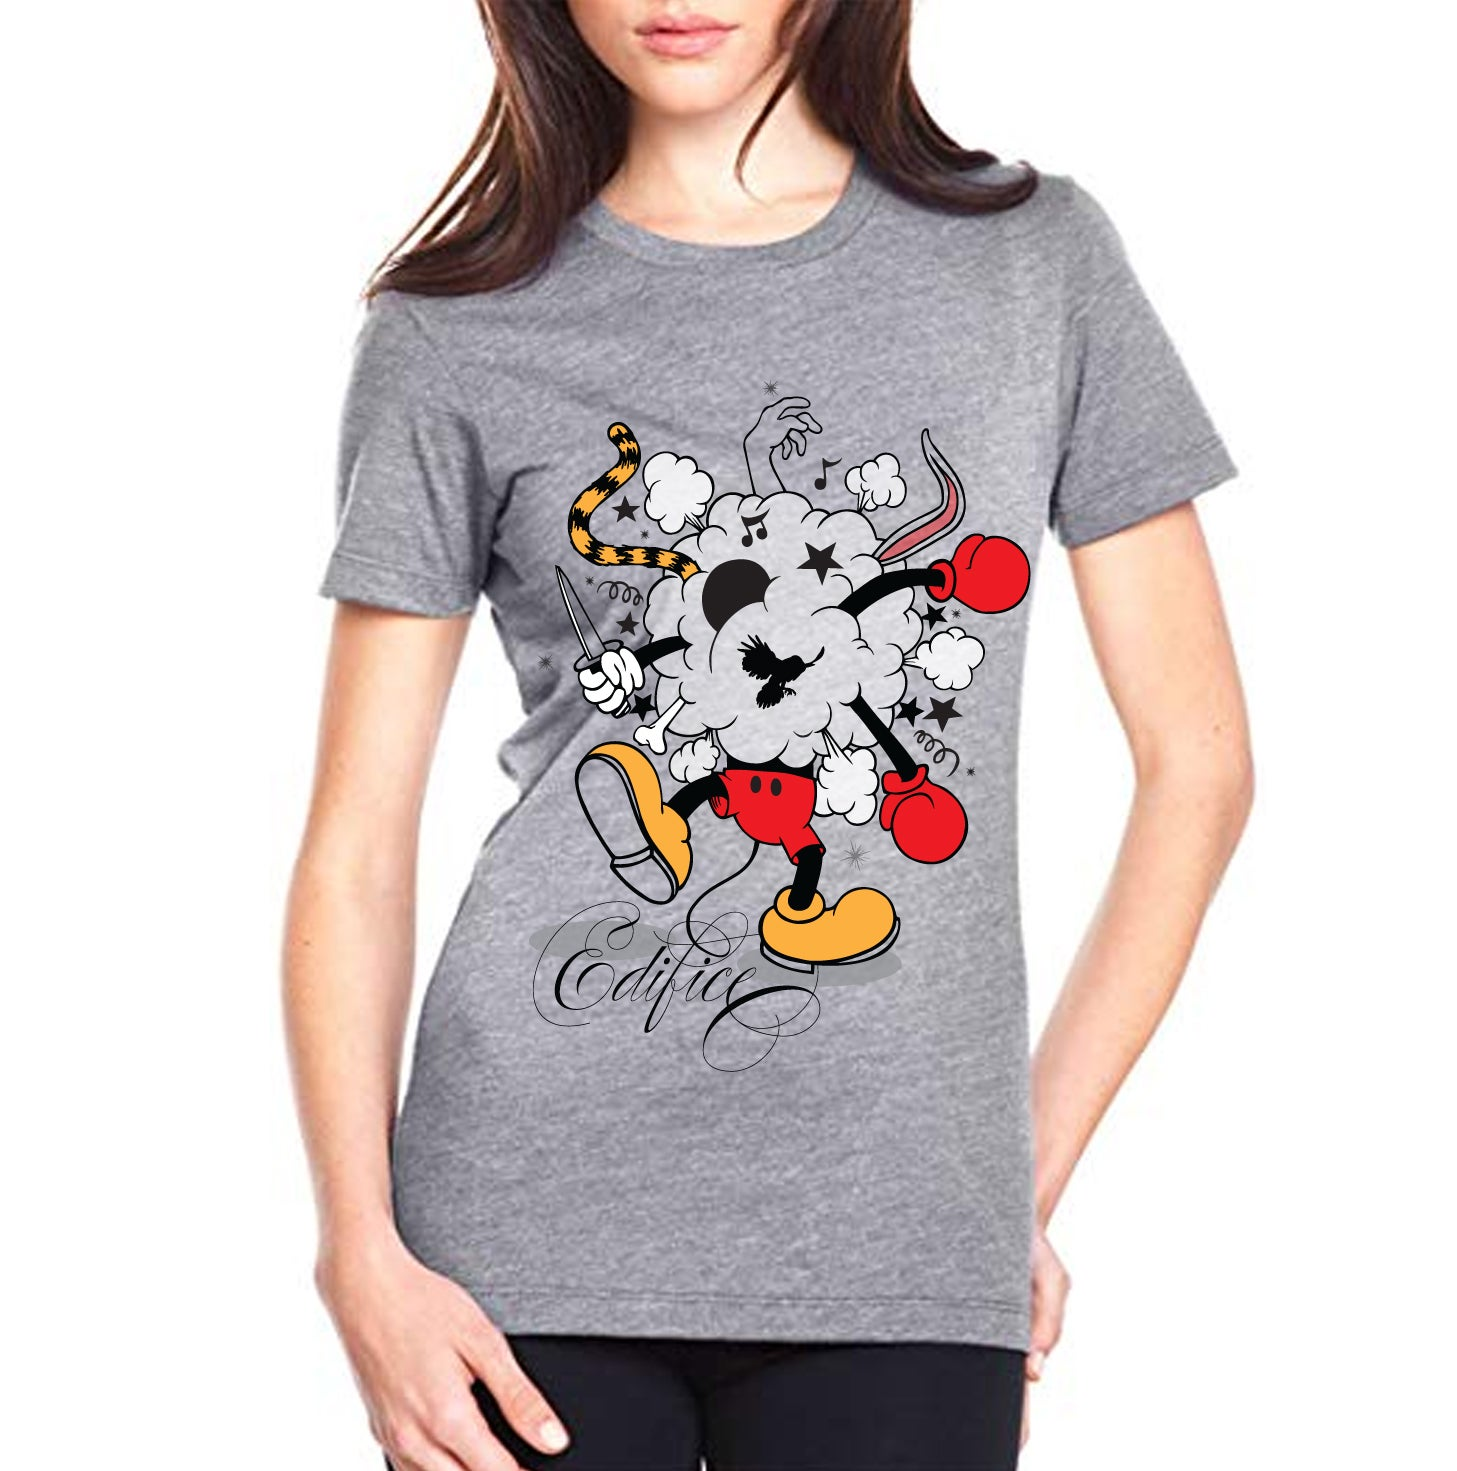 Image of EDIFICE CLOTHING BATTLE OF THE TOONS WOMANS 4 COLOR HAND PRINTED SHORT SLEEVE